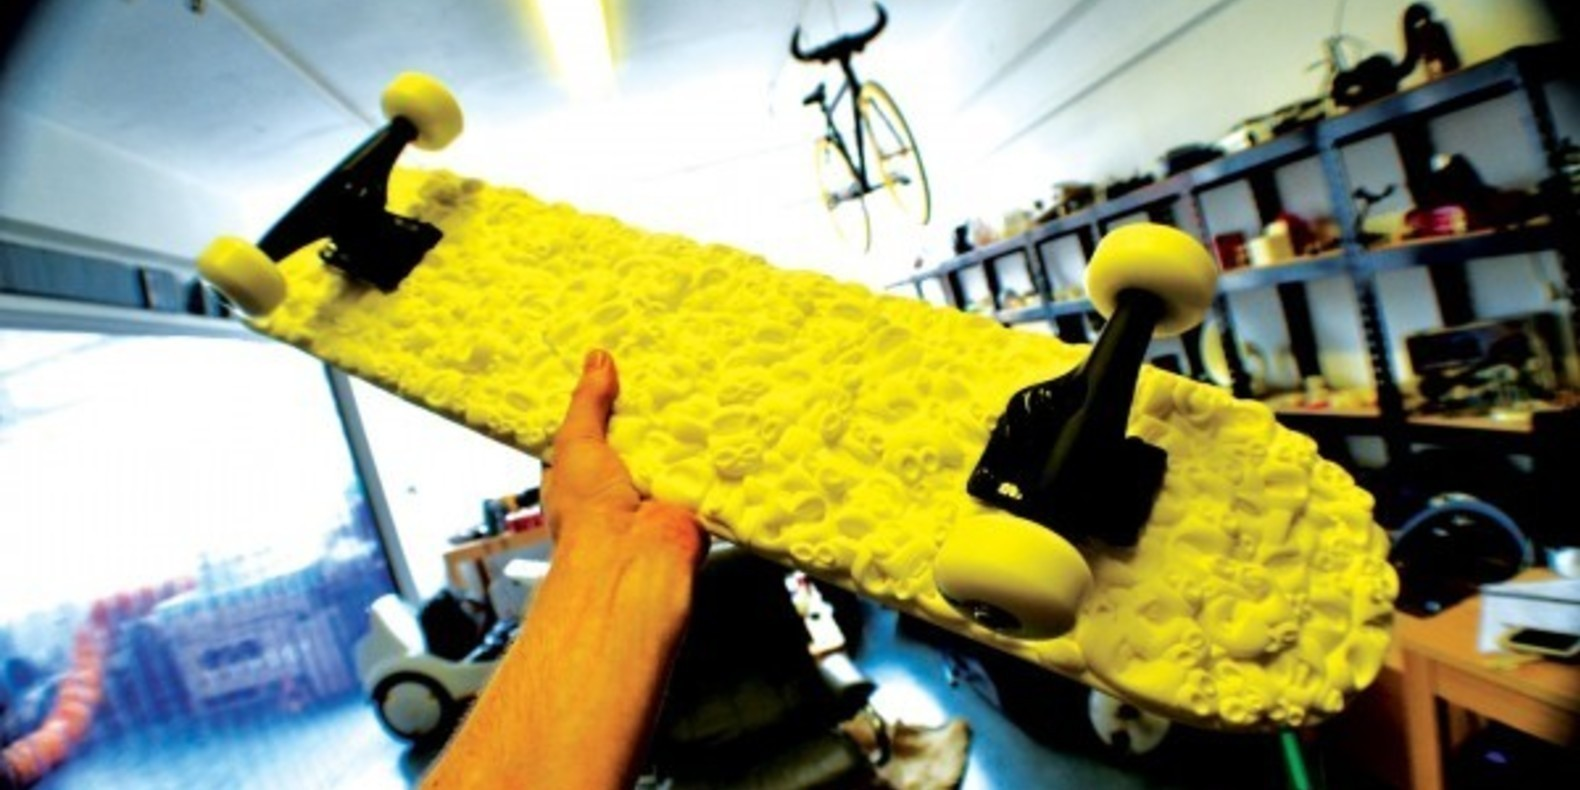 The first skateboard printed in 3D